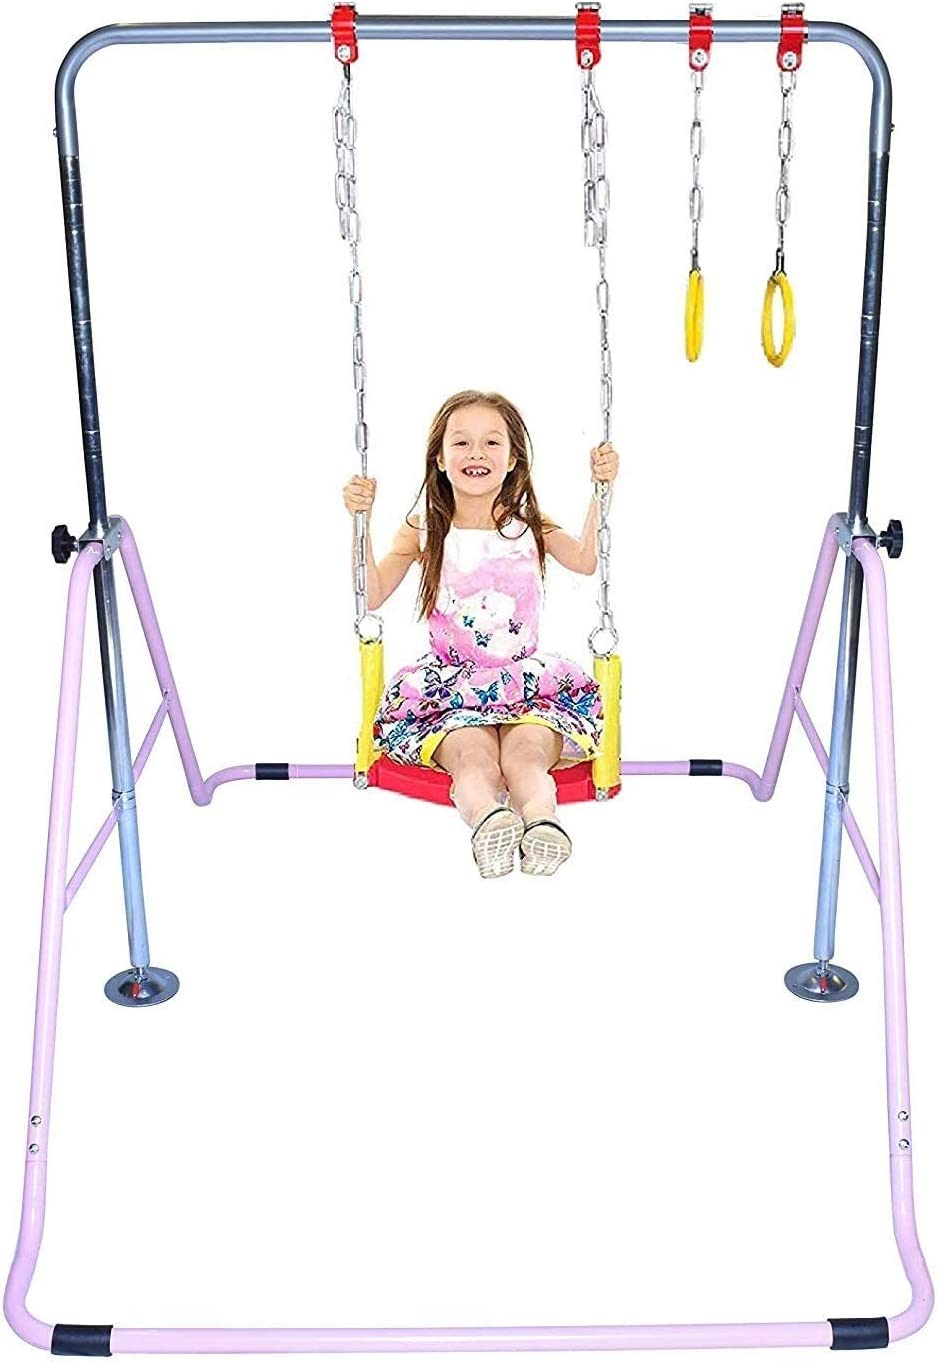 KidsJungle Popular shop is the lowest price challenge Kids Jungle Gym 3 in Gymnastics Monkey Clearance SALE Limited time Bar 1 S Deluxe